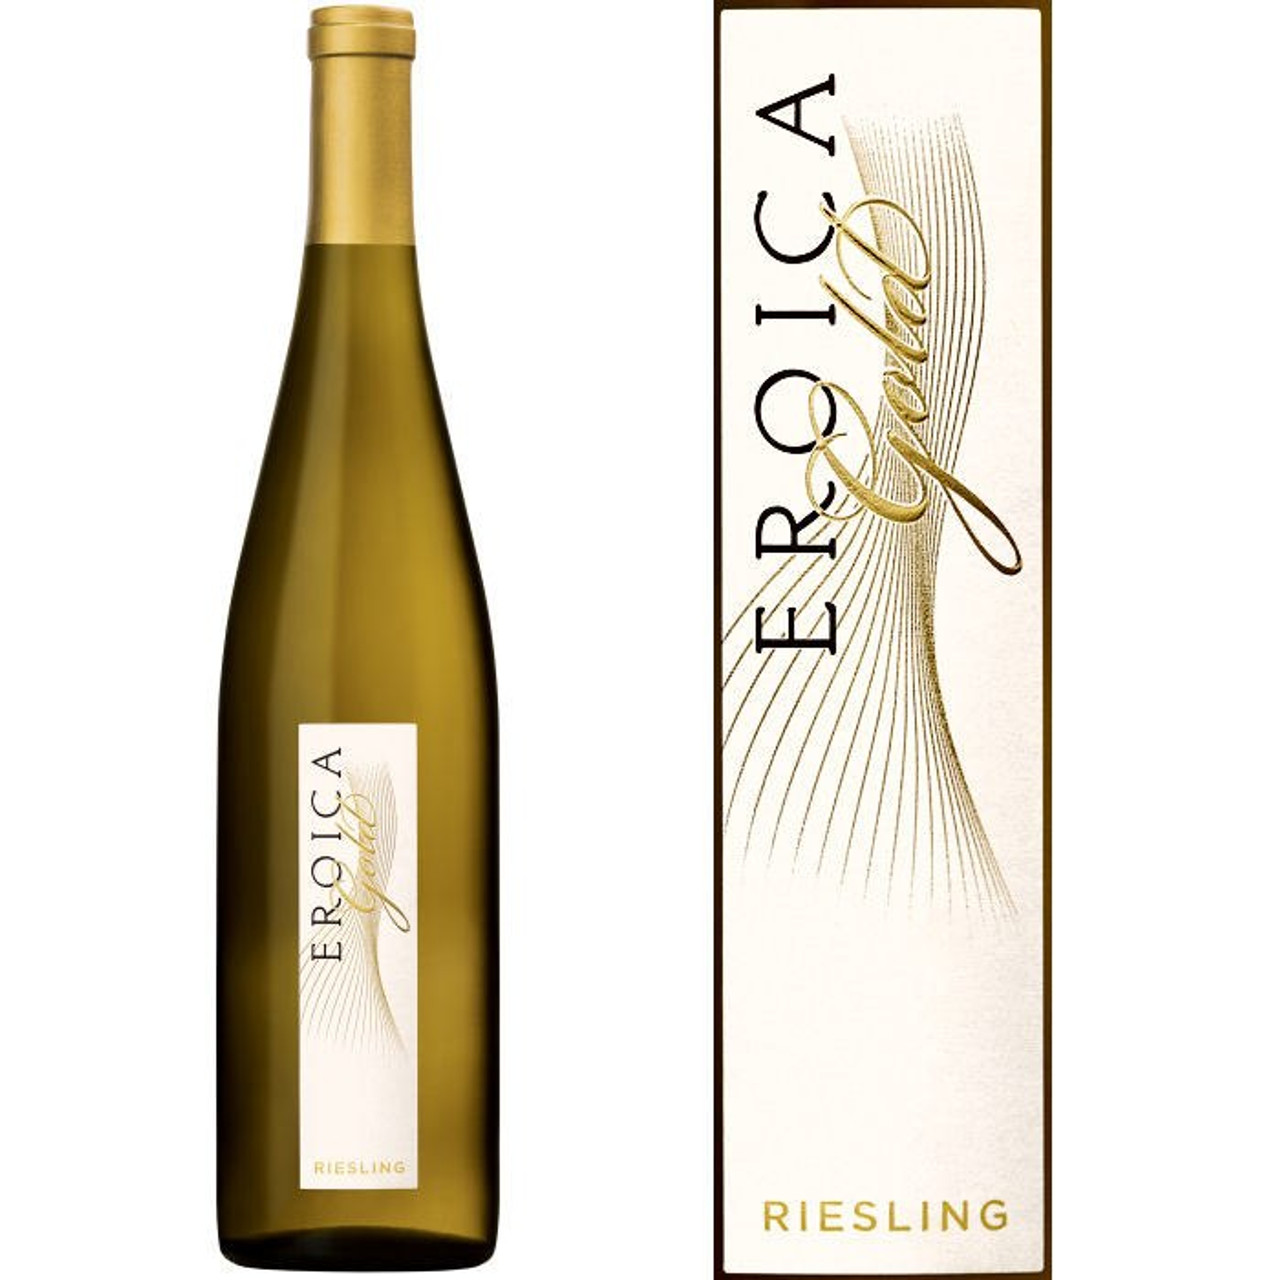 12 Bottle Case Chateau Ste. Michelle - Dr. Loosen Eroica Gold Riesling Washington 2014 Rated 92JS w/ Free Shipping